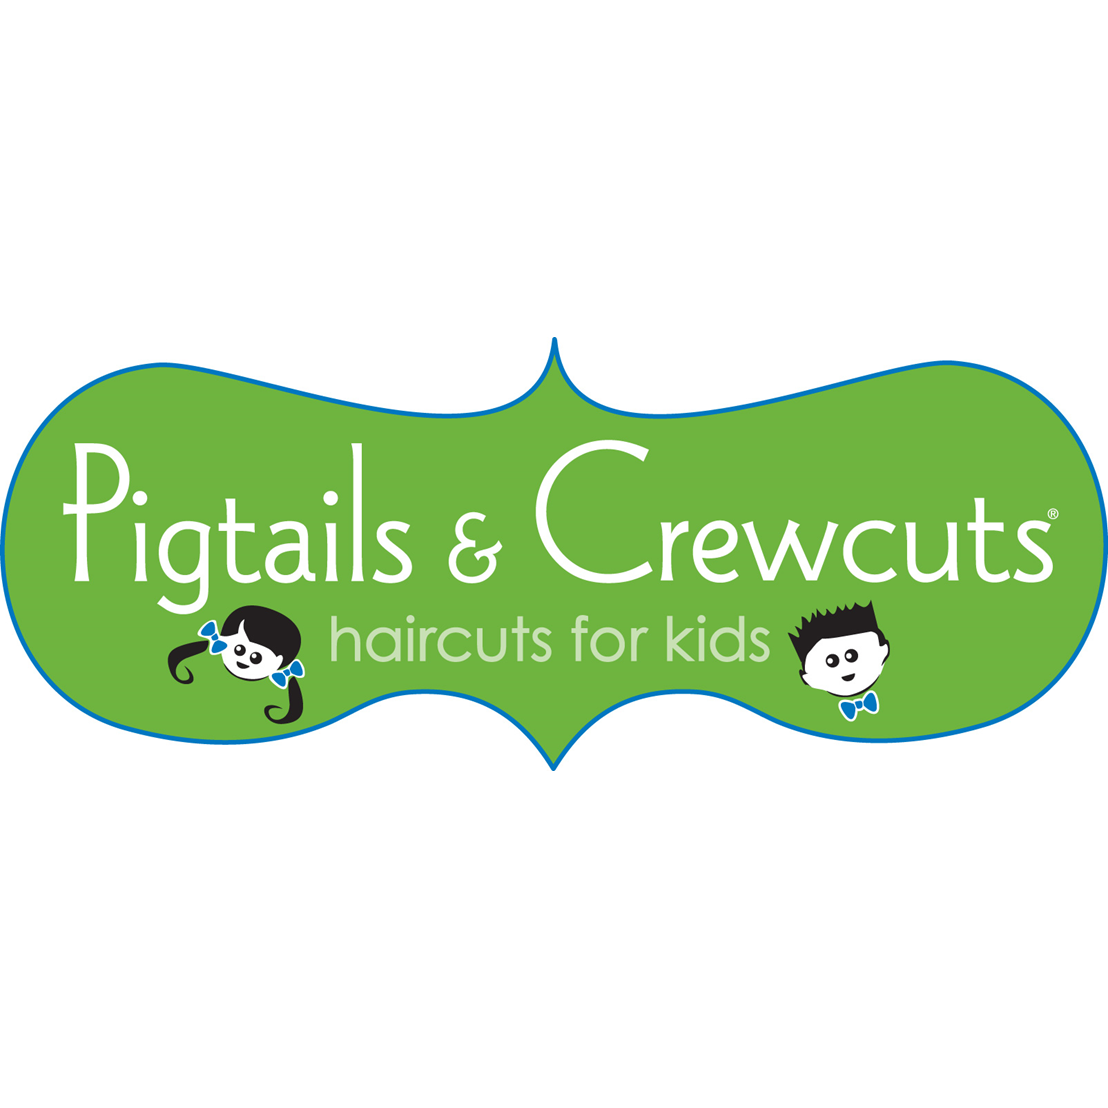 Pigtails & Crewcuts: Haircuts for Kids - Buckhead